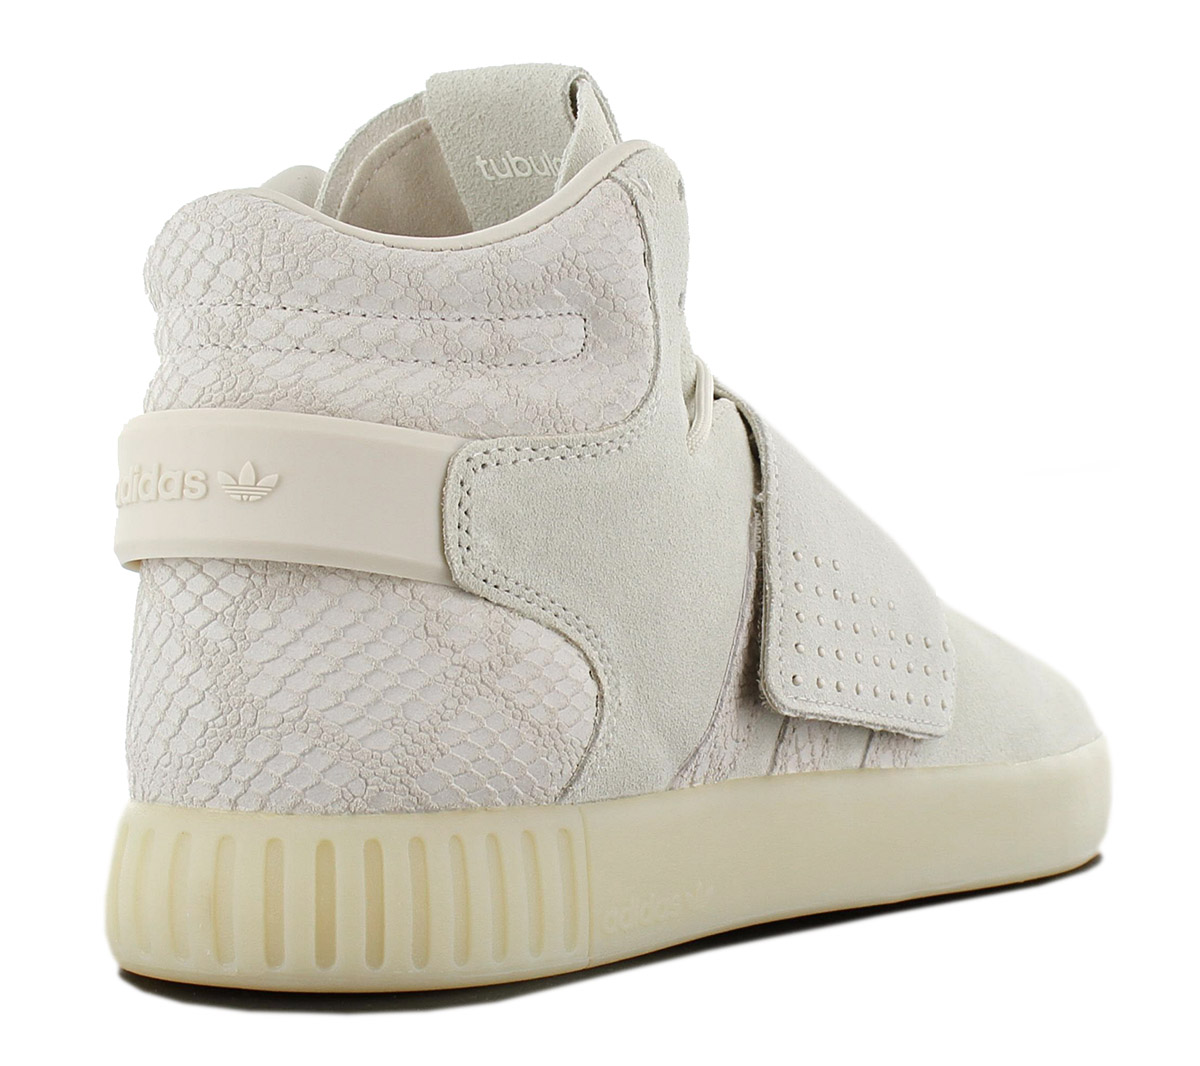 Adidas Originals Tubular Invader Strap Men s Sneakers Shoes Leather ... 5c2e6a43c